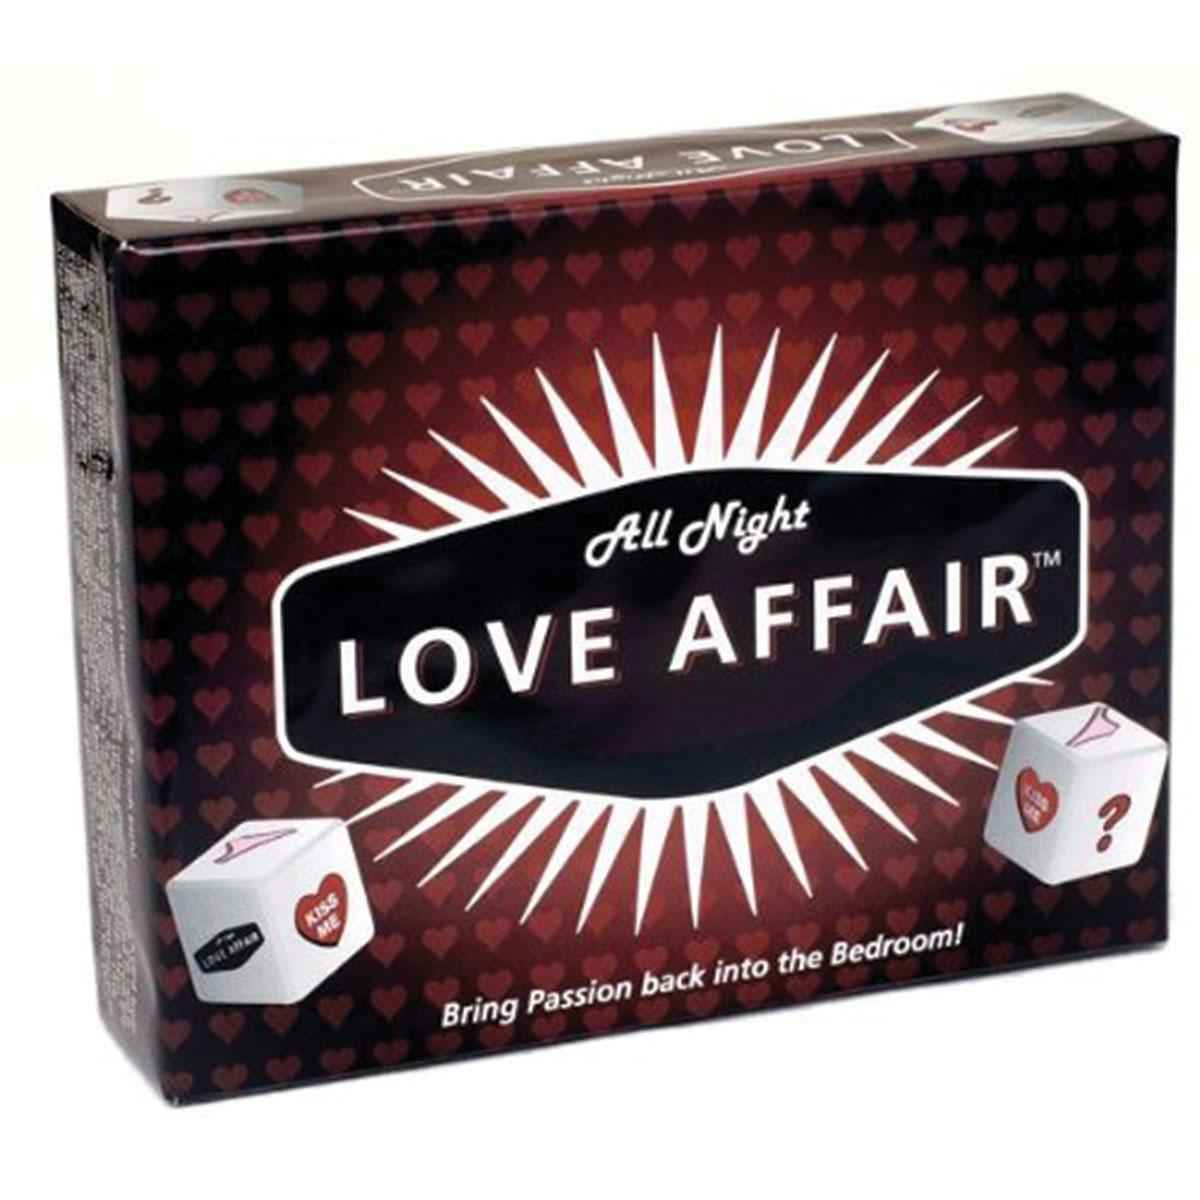 All Night Love Affair Game - VixenAndStag